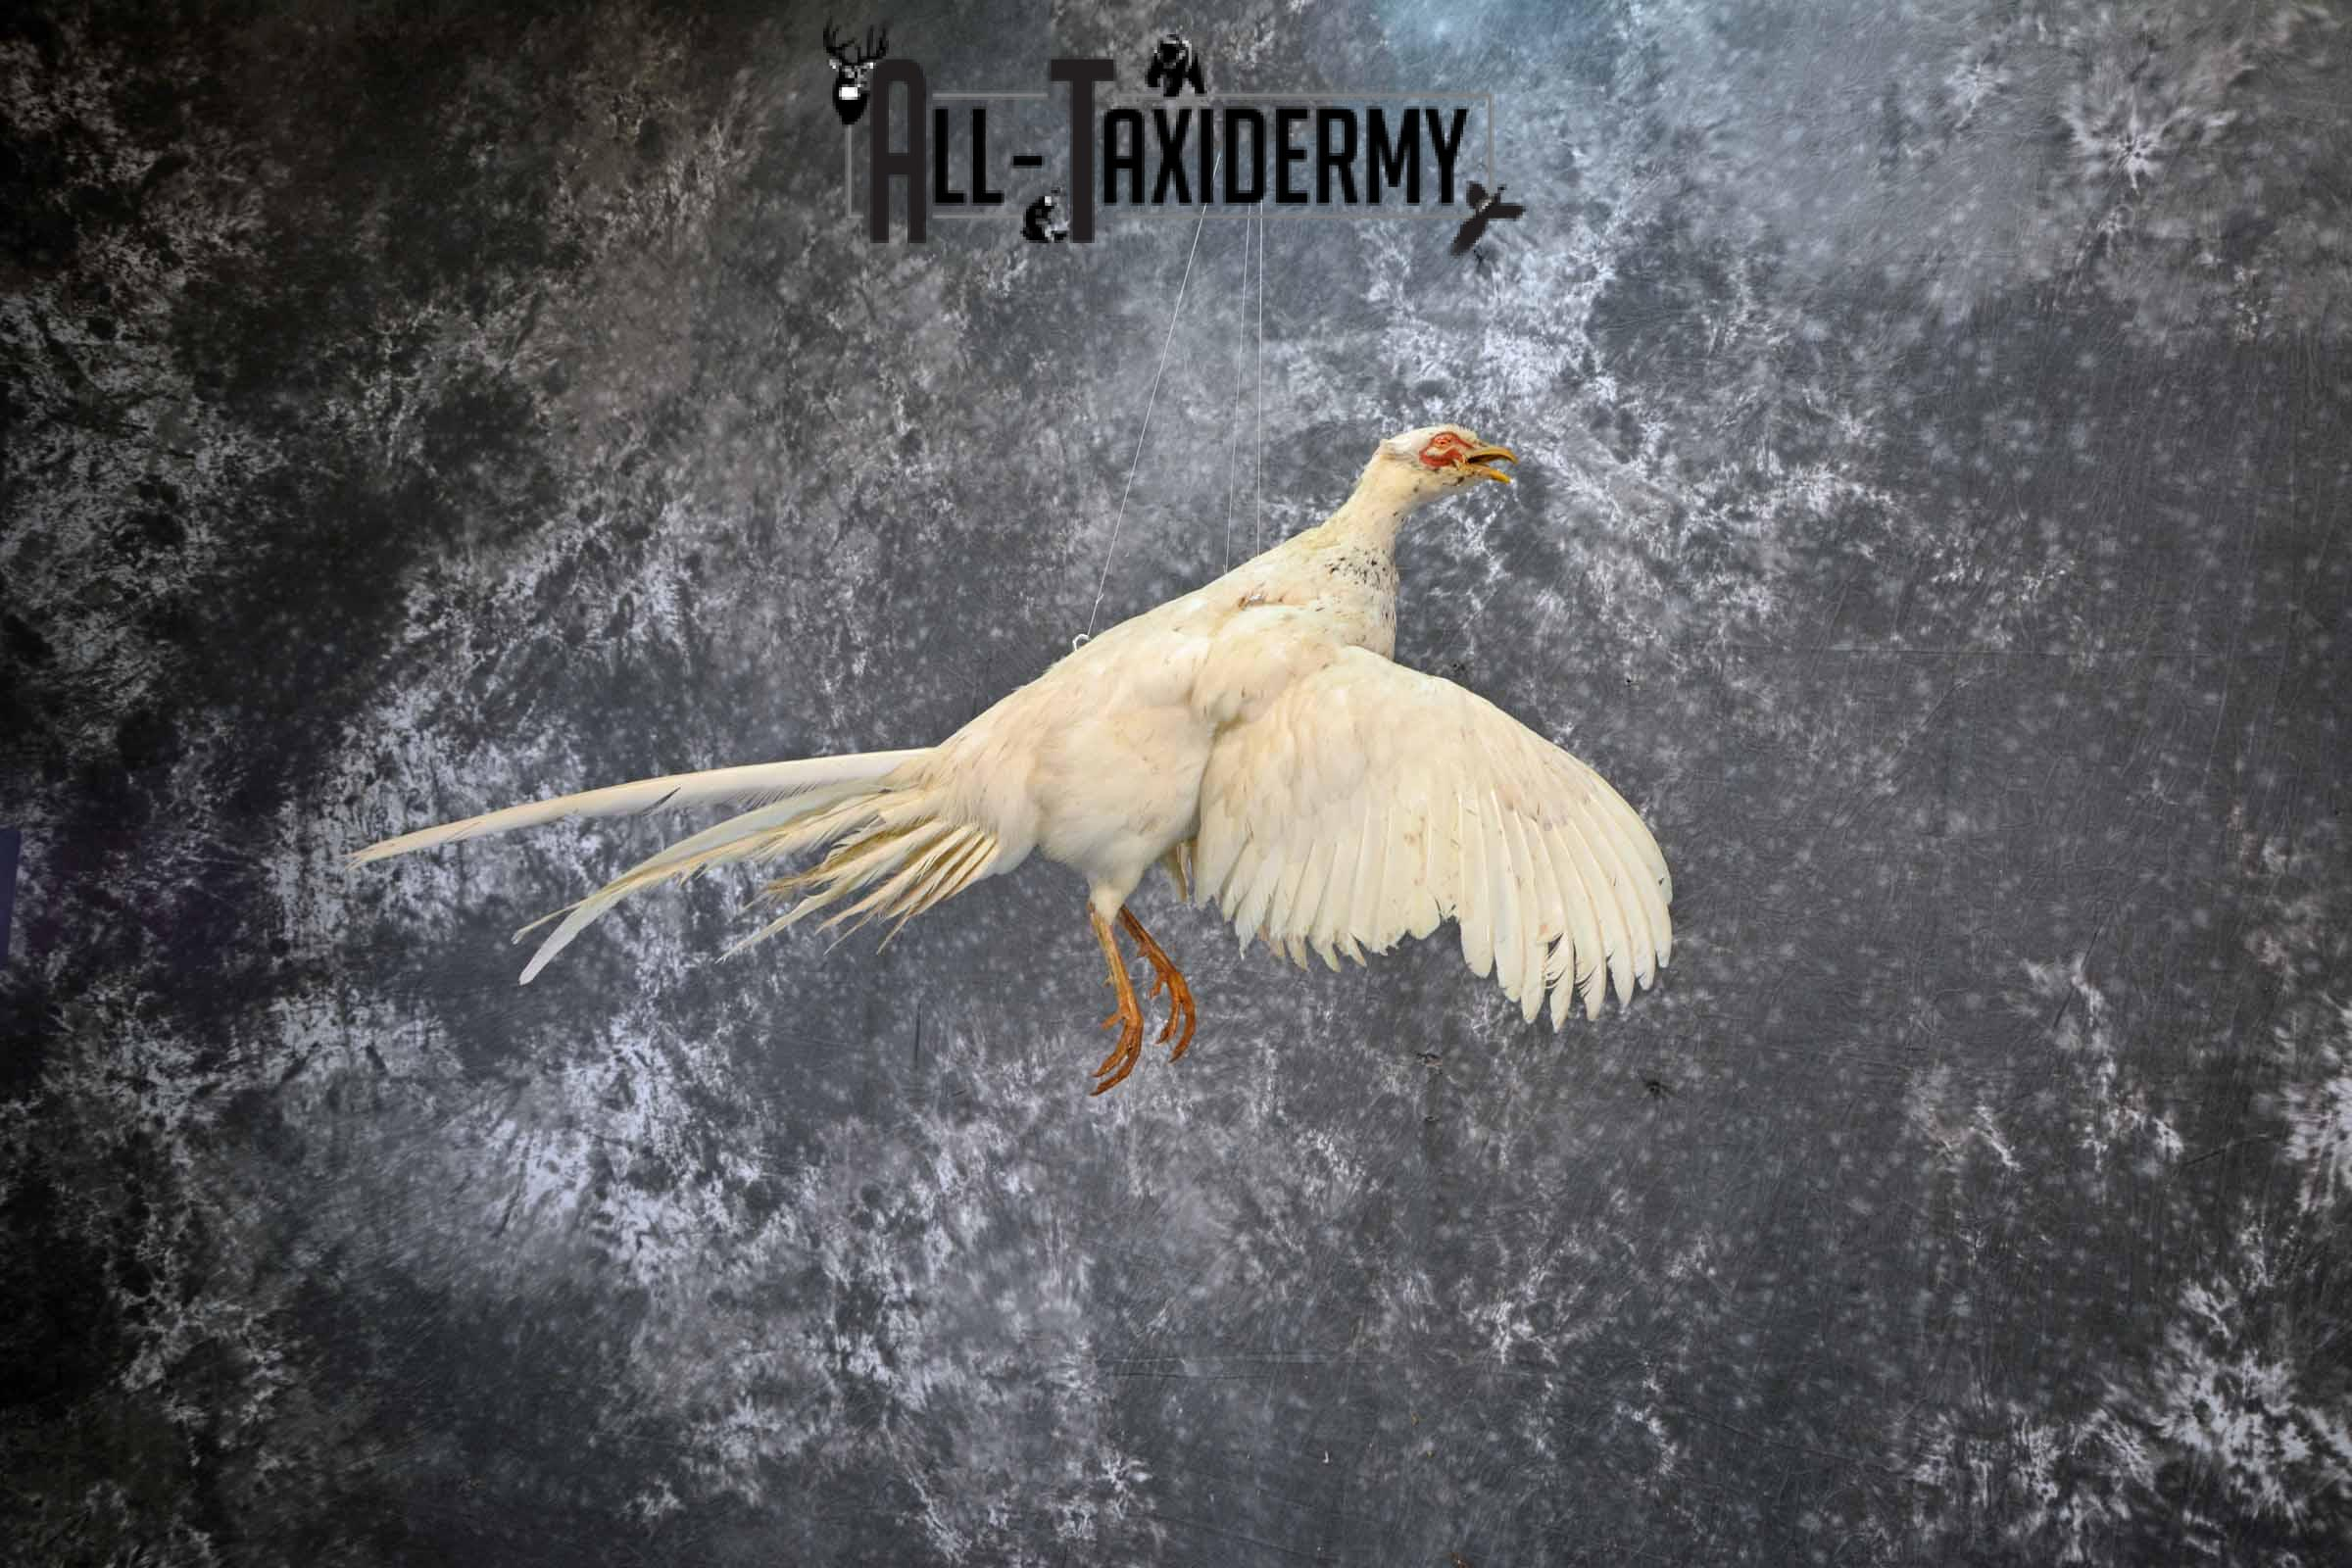 White Pheasant taxidermy mount for sale SKU 1199